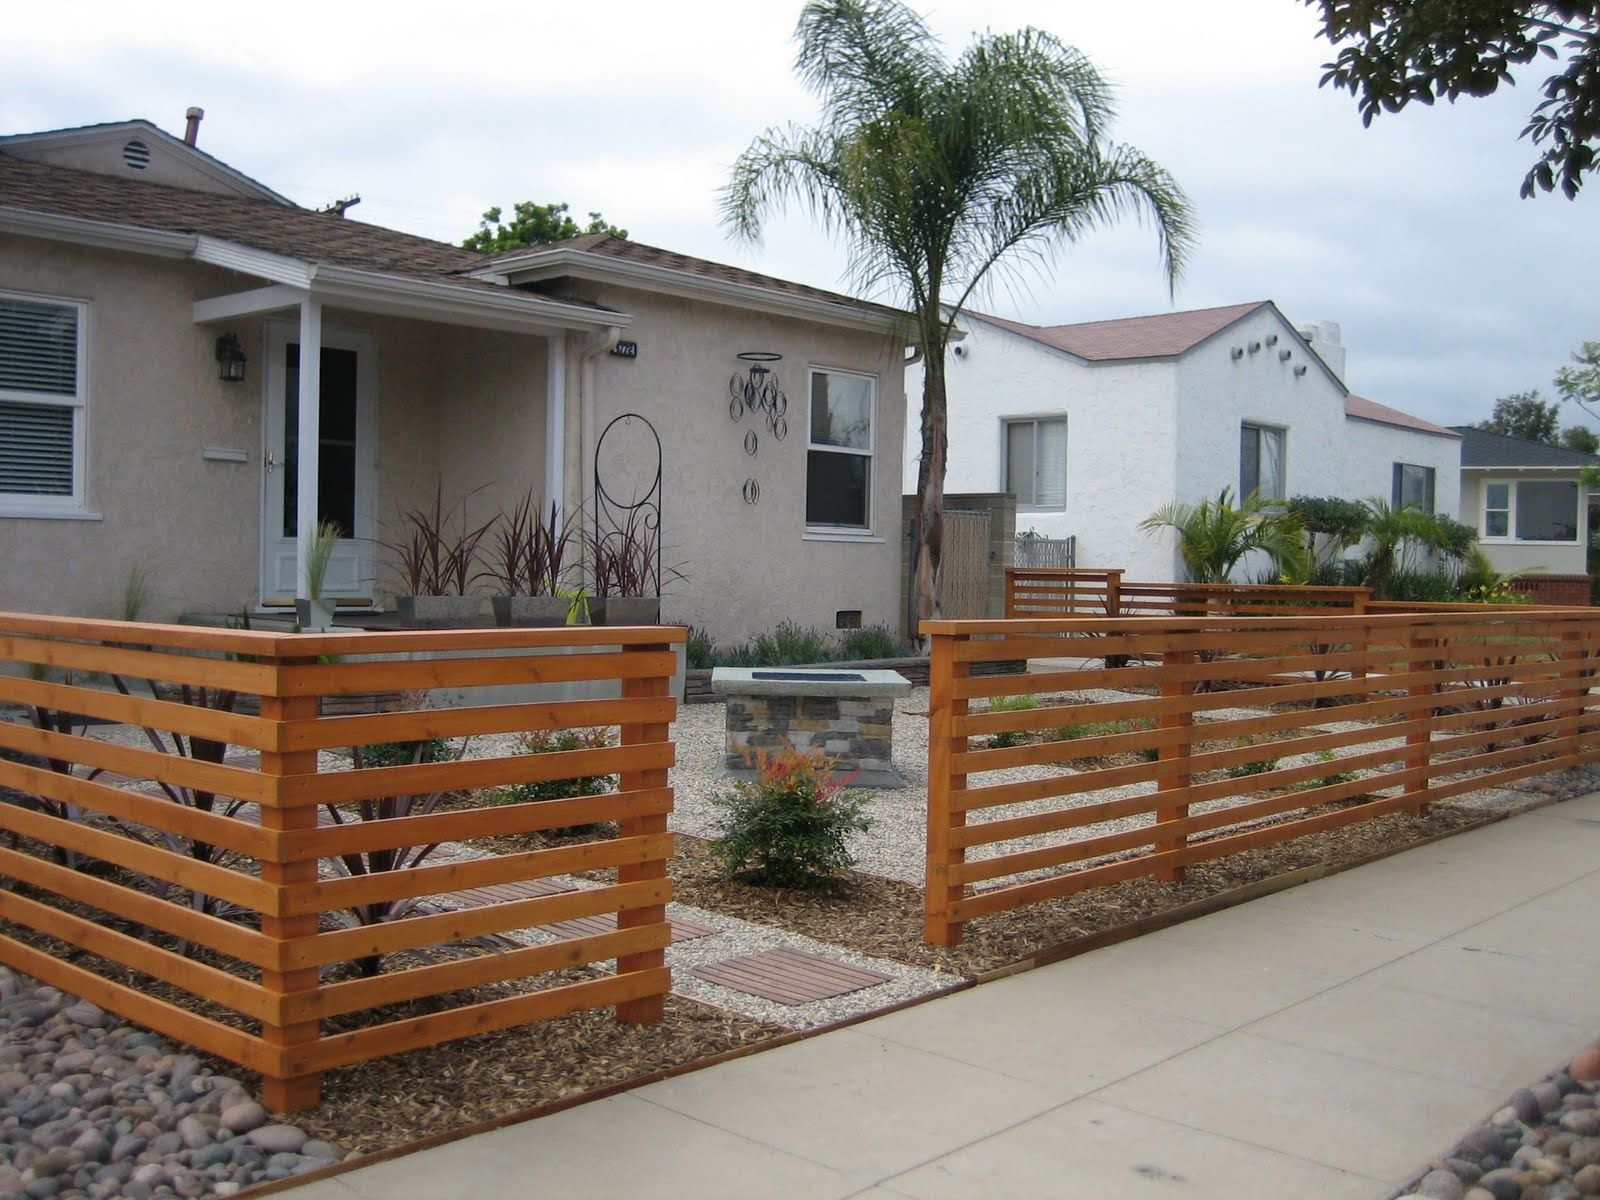 Fencing ideas for front yards - Front Porch Horizontal Fence Posted By Van Nuis Design At 7 30 Pm 0comments